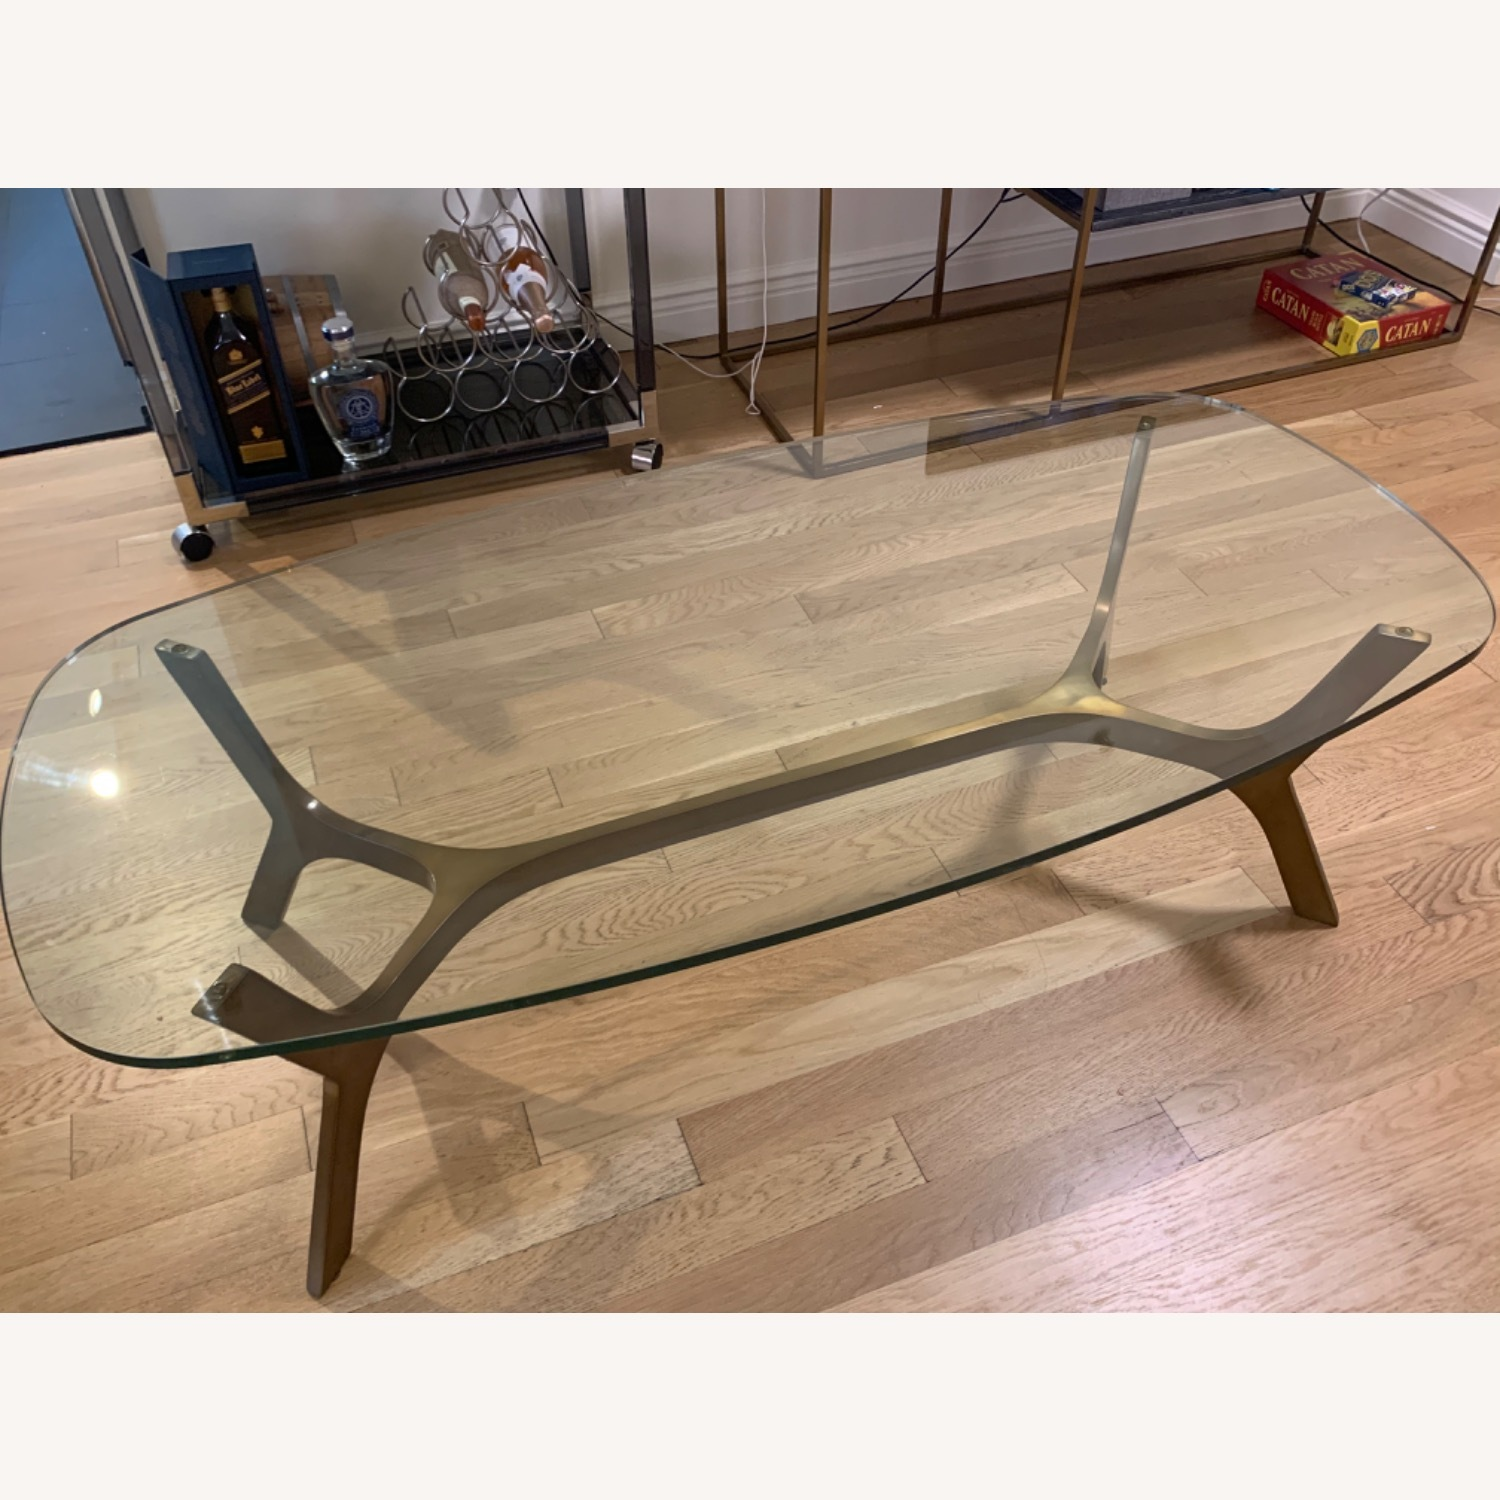 Crate and Barrel Coffee Table - image-2